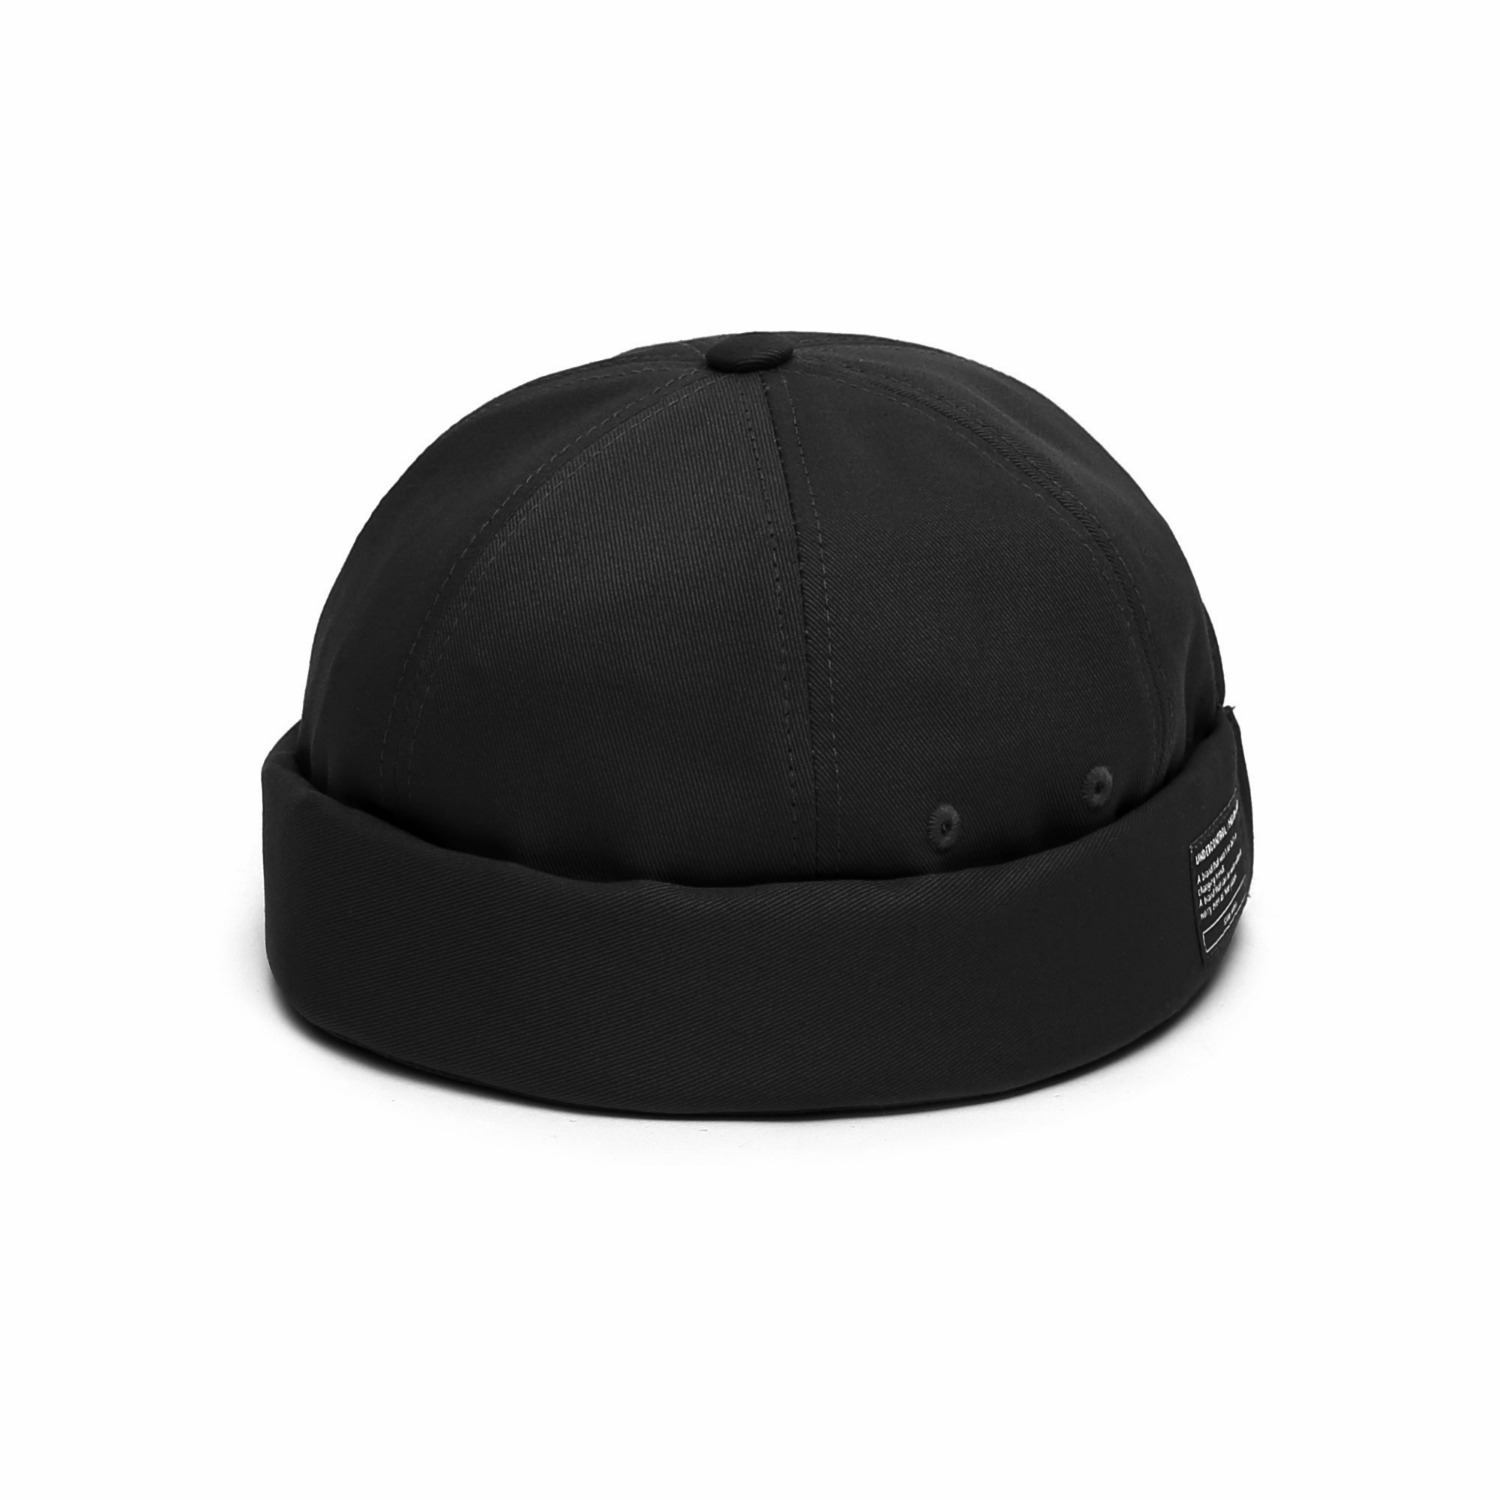 MOLD CAP / TWILL COTTON / BLACK